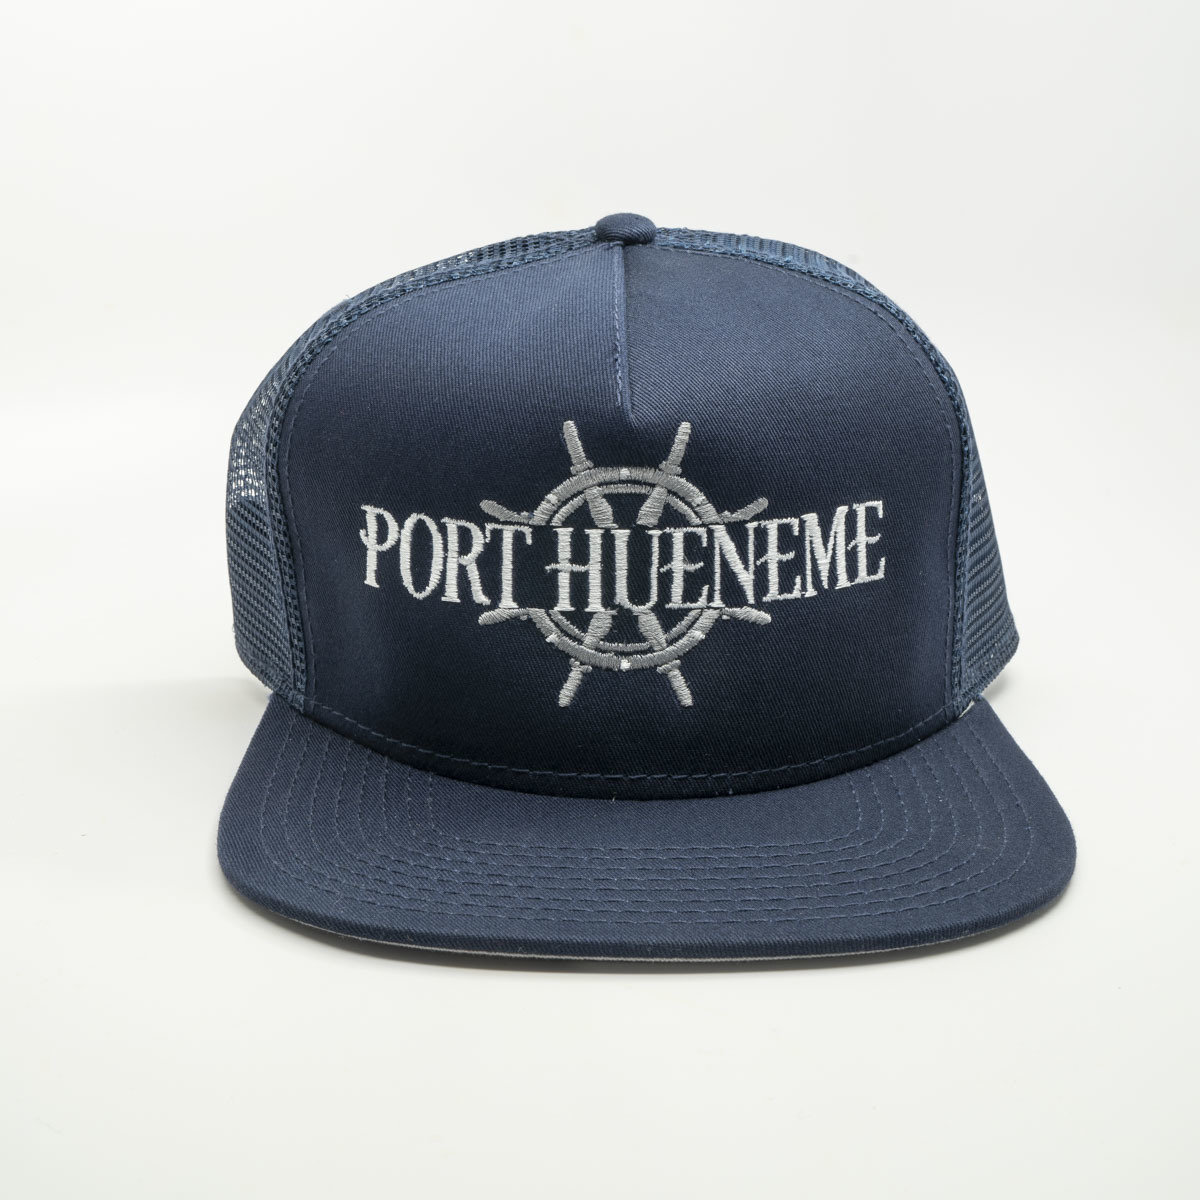 Port Hueneme Trucker Hat